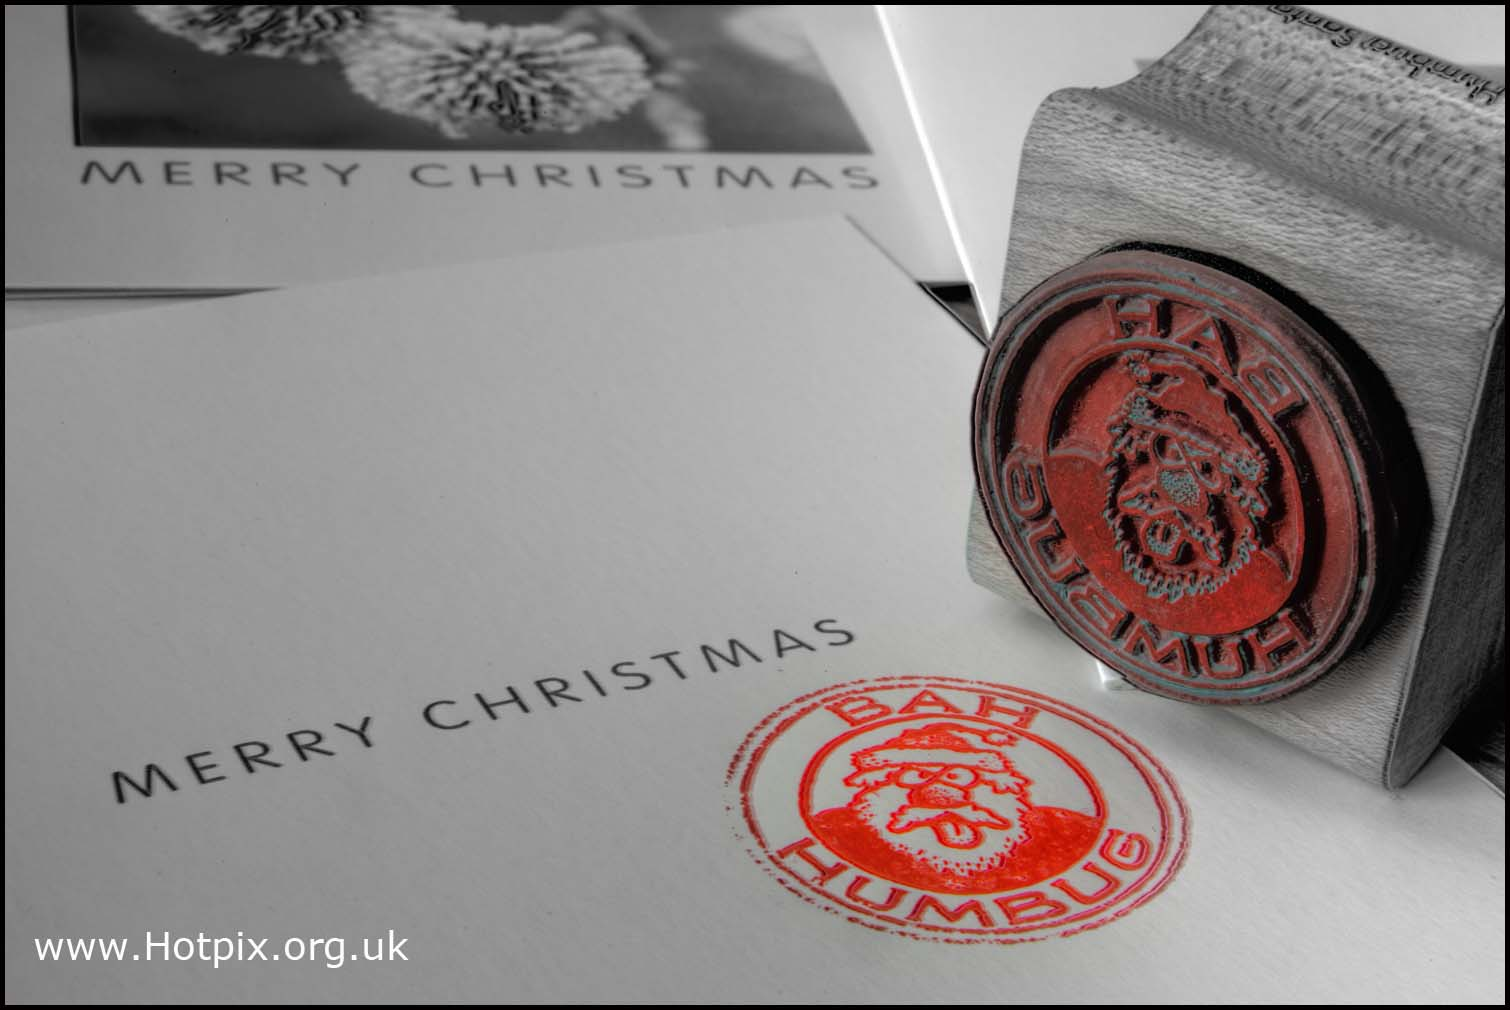 bah,humbug,bahhumbug,bahumbug,stamp,rubber,rubberstamp,red,BW,black,white,monochrome,christmas,xmas,card,cards,december,last,post,office,collection,second,first,class,2nd,1st,postal,royal,mail,ihatexmas,ihatechristmas,hate,crimbo,mono,partial,mixed,color,selctive,colour,colores,stillife,stilllife,still,life,hotpix!